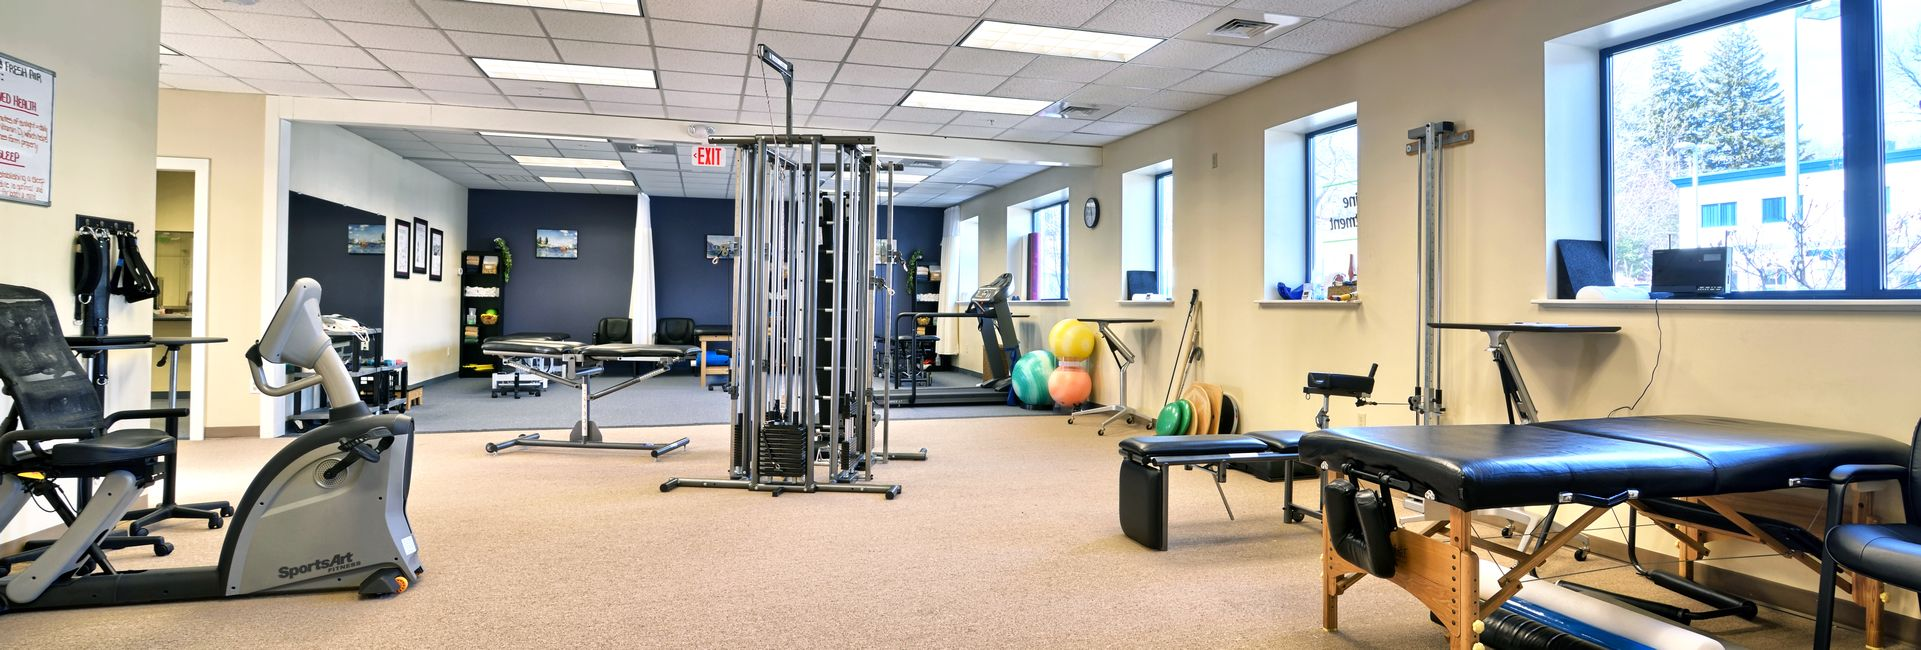 Interior of our physical therapy and sports medicine clinic in Amesbury, MA.